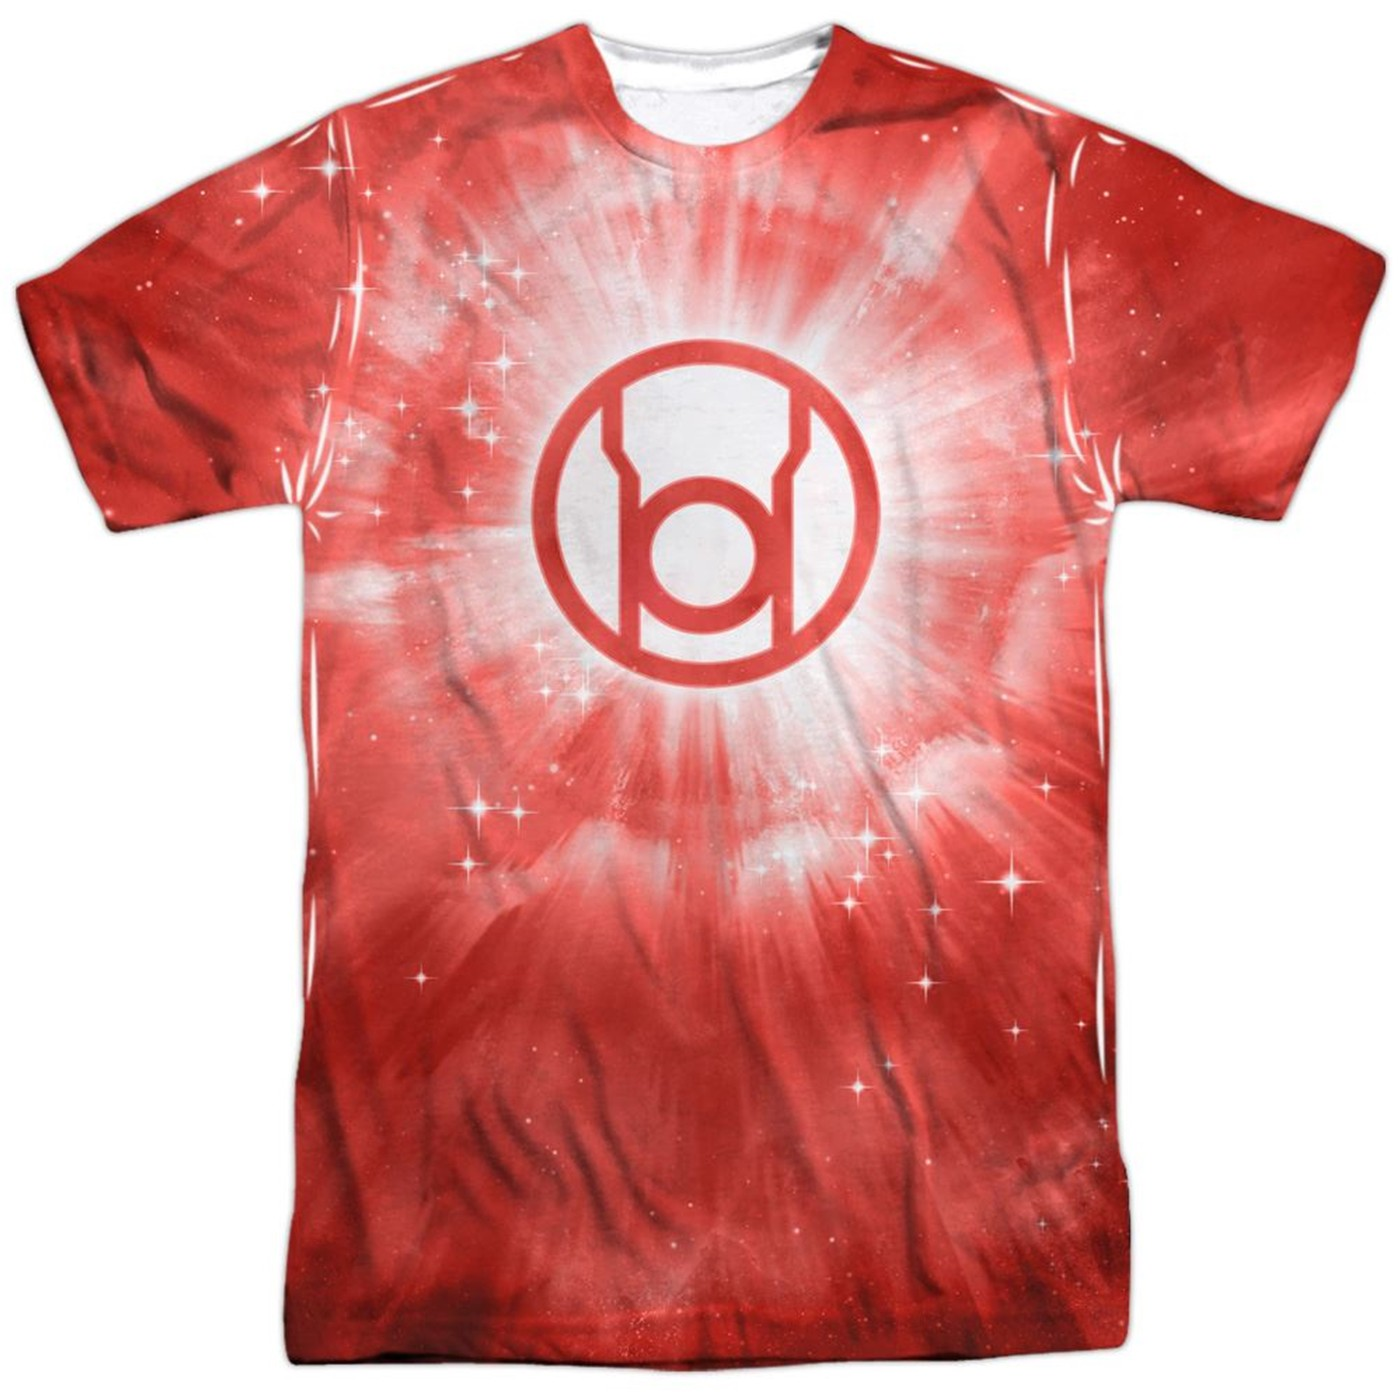 Green Lantern Red Energy Symbol Sublimated Front and Back Men's T-Shirt